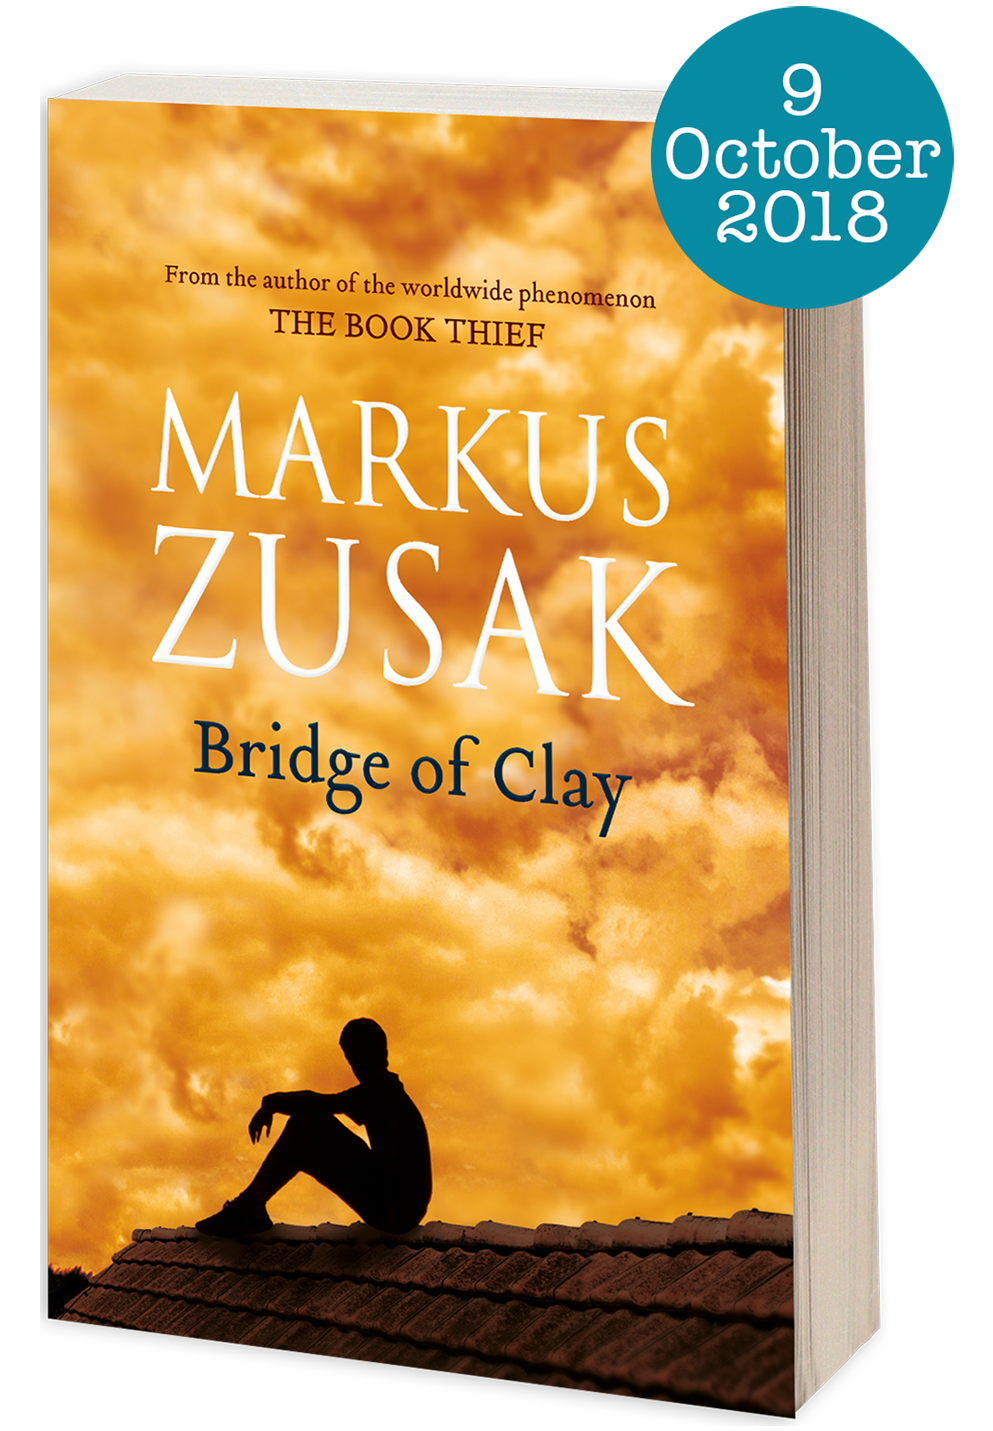 New book from Markus Zusak - Bridge of Clay - Trade Paperback - 9781760559922